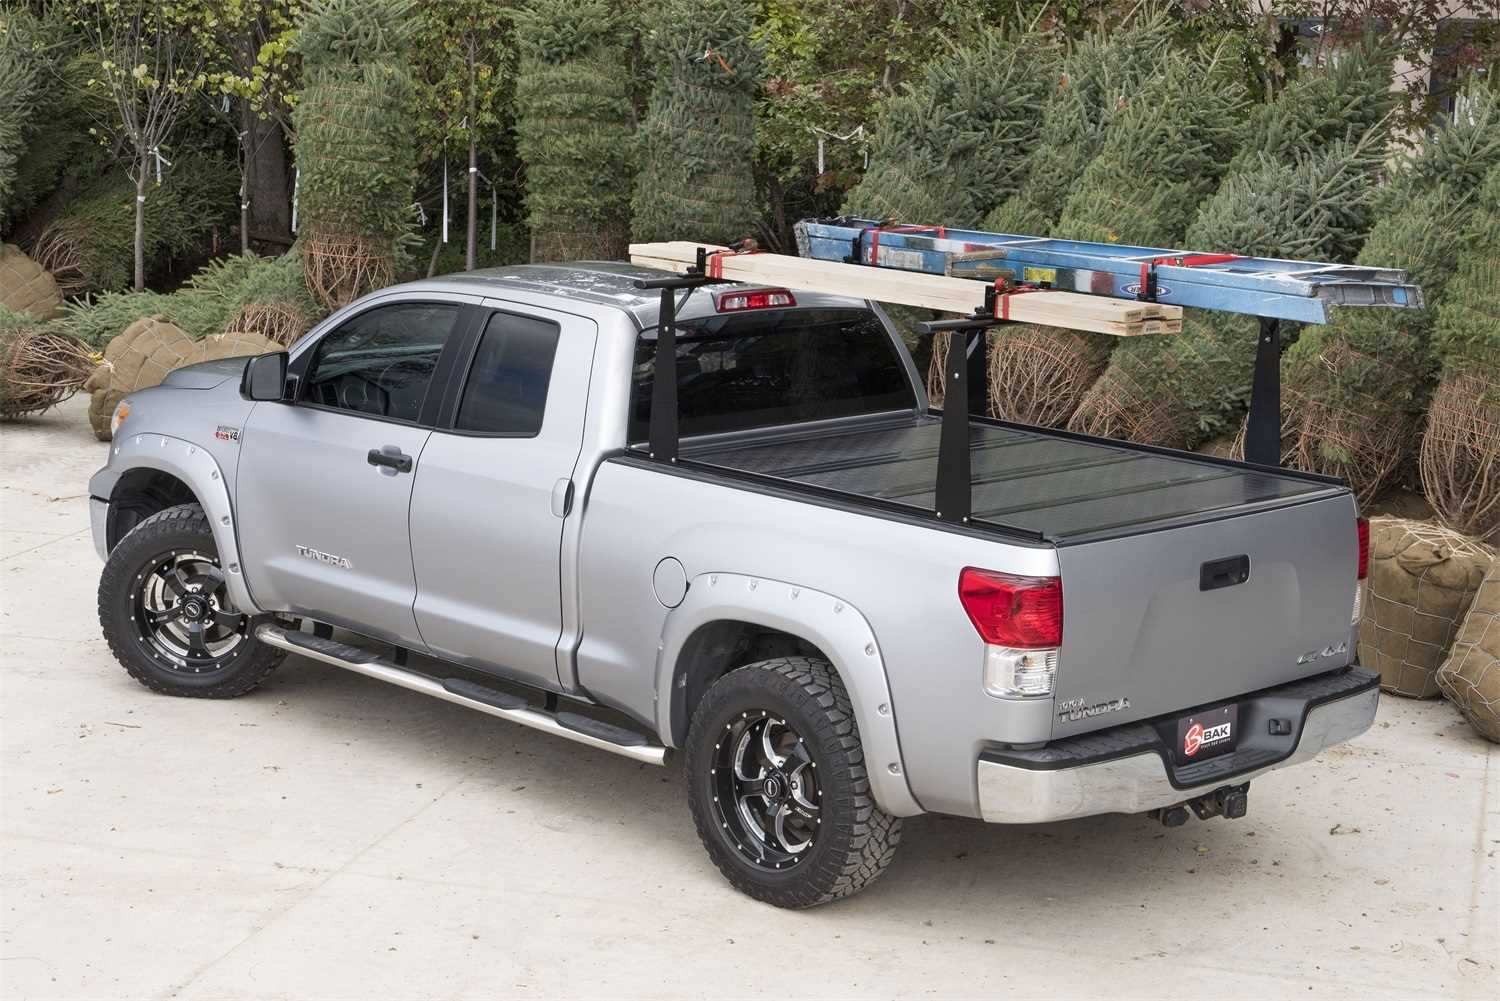 72307BT Bak Industries BAKFlip CS-F1 Hard Folding Truck Bed Cover/Integrated Rack System